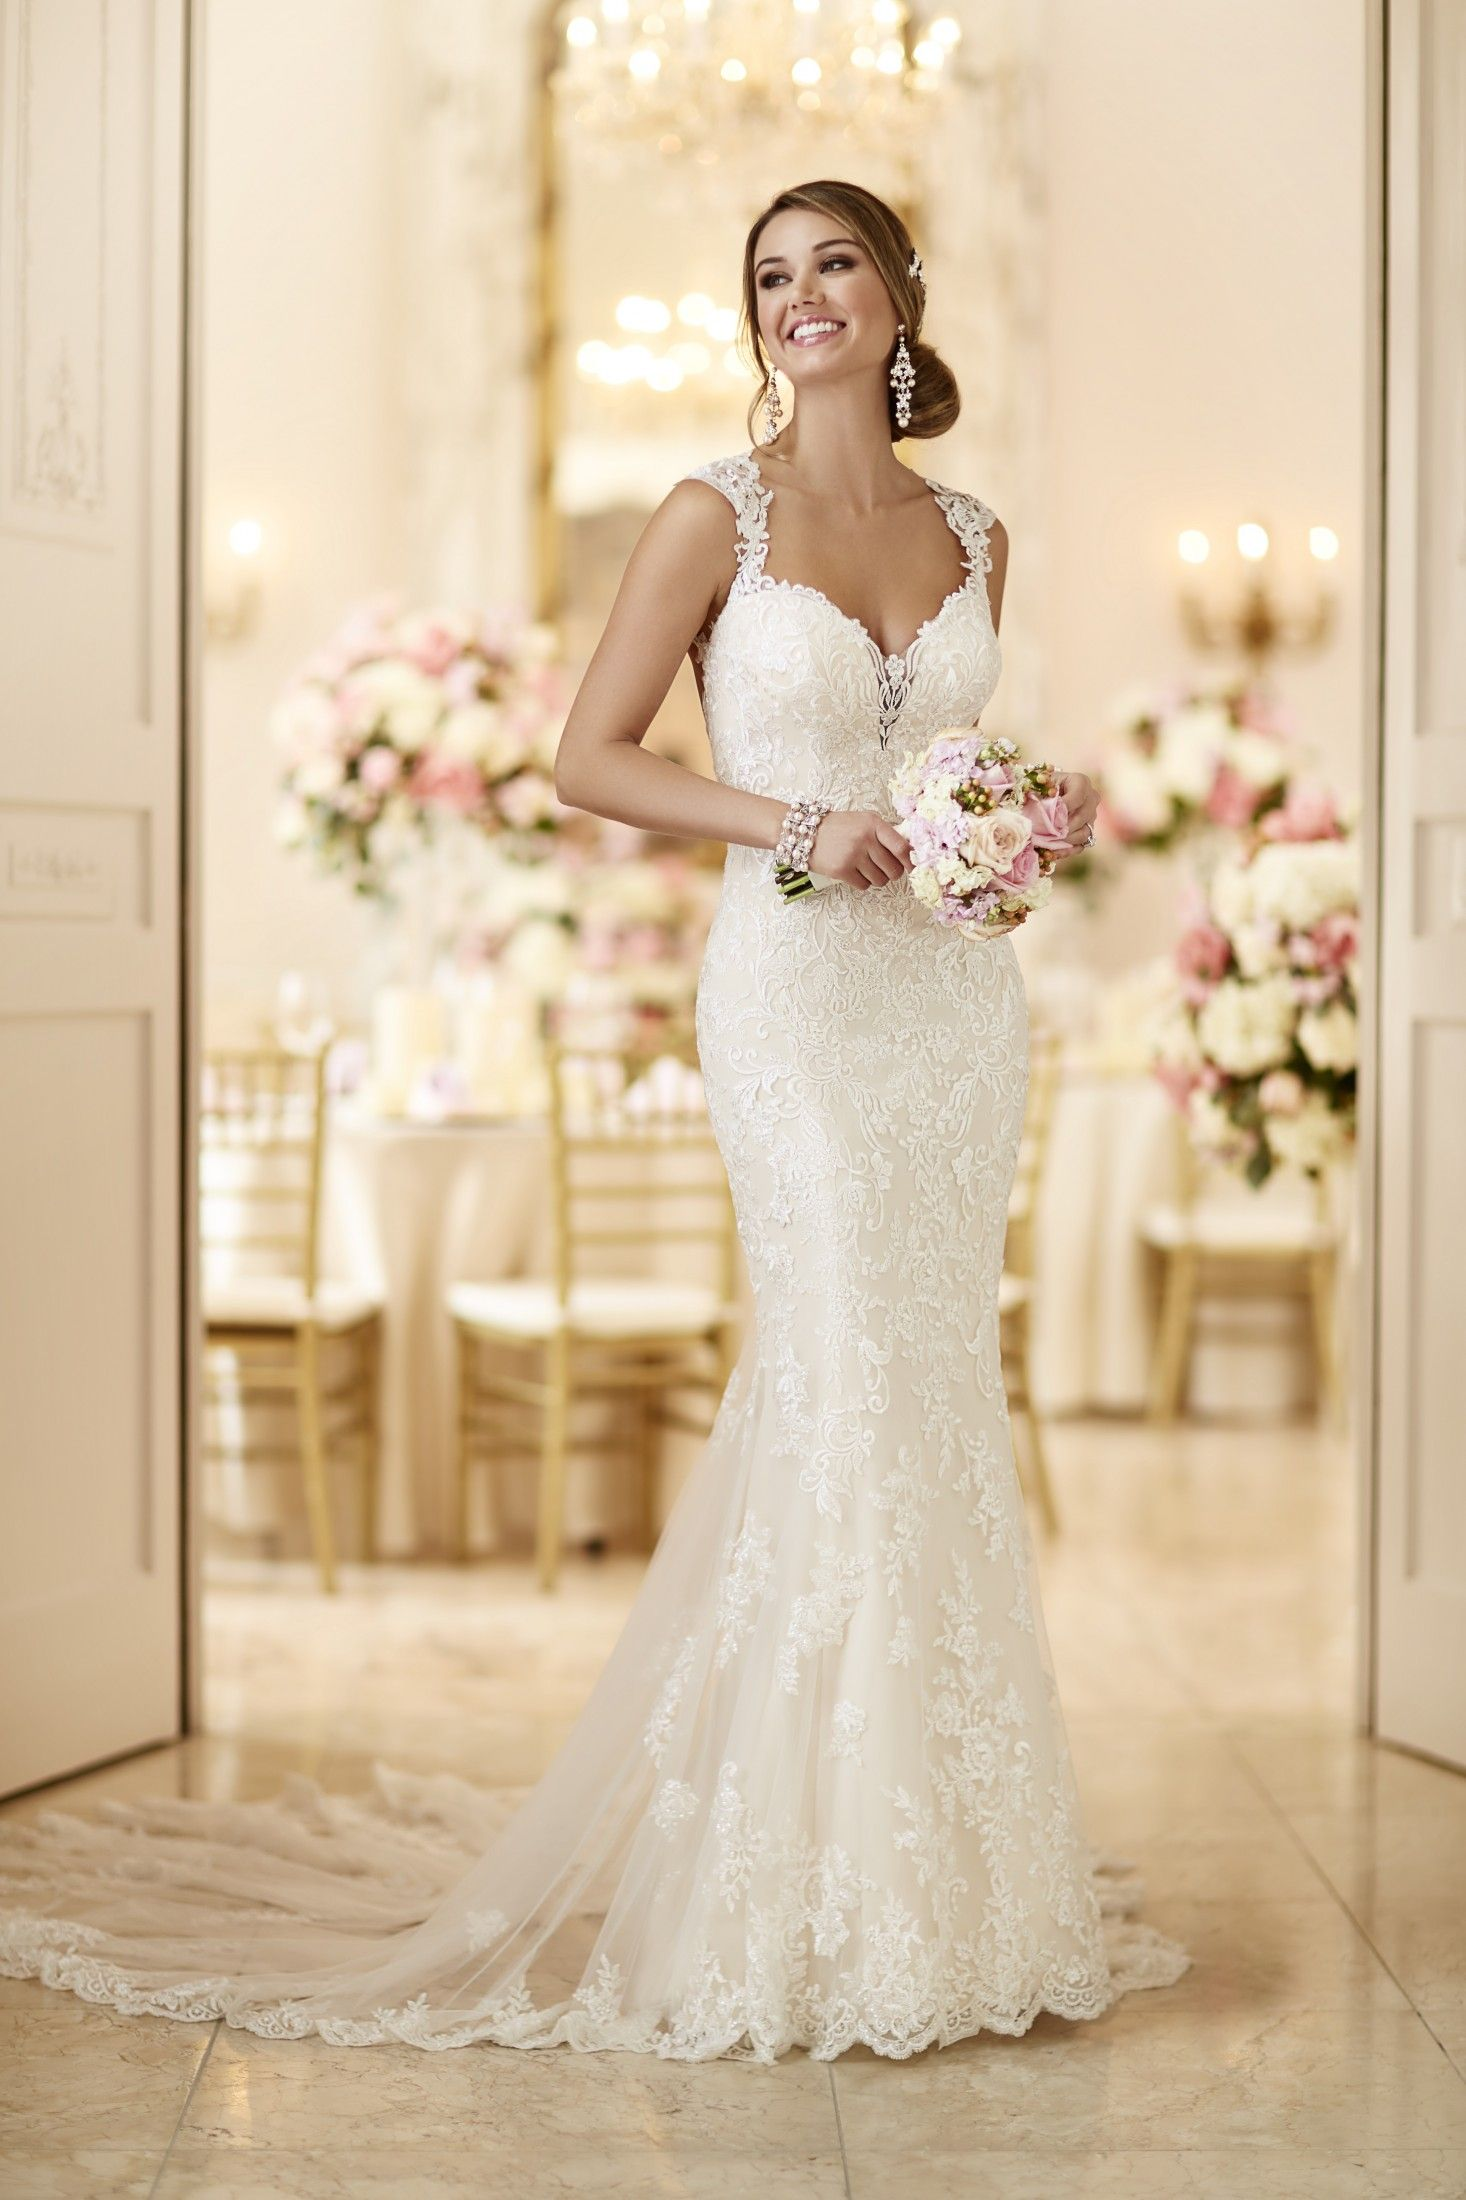 This romantic lace over matteside lustre satin wedding gown from